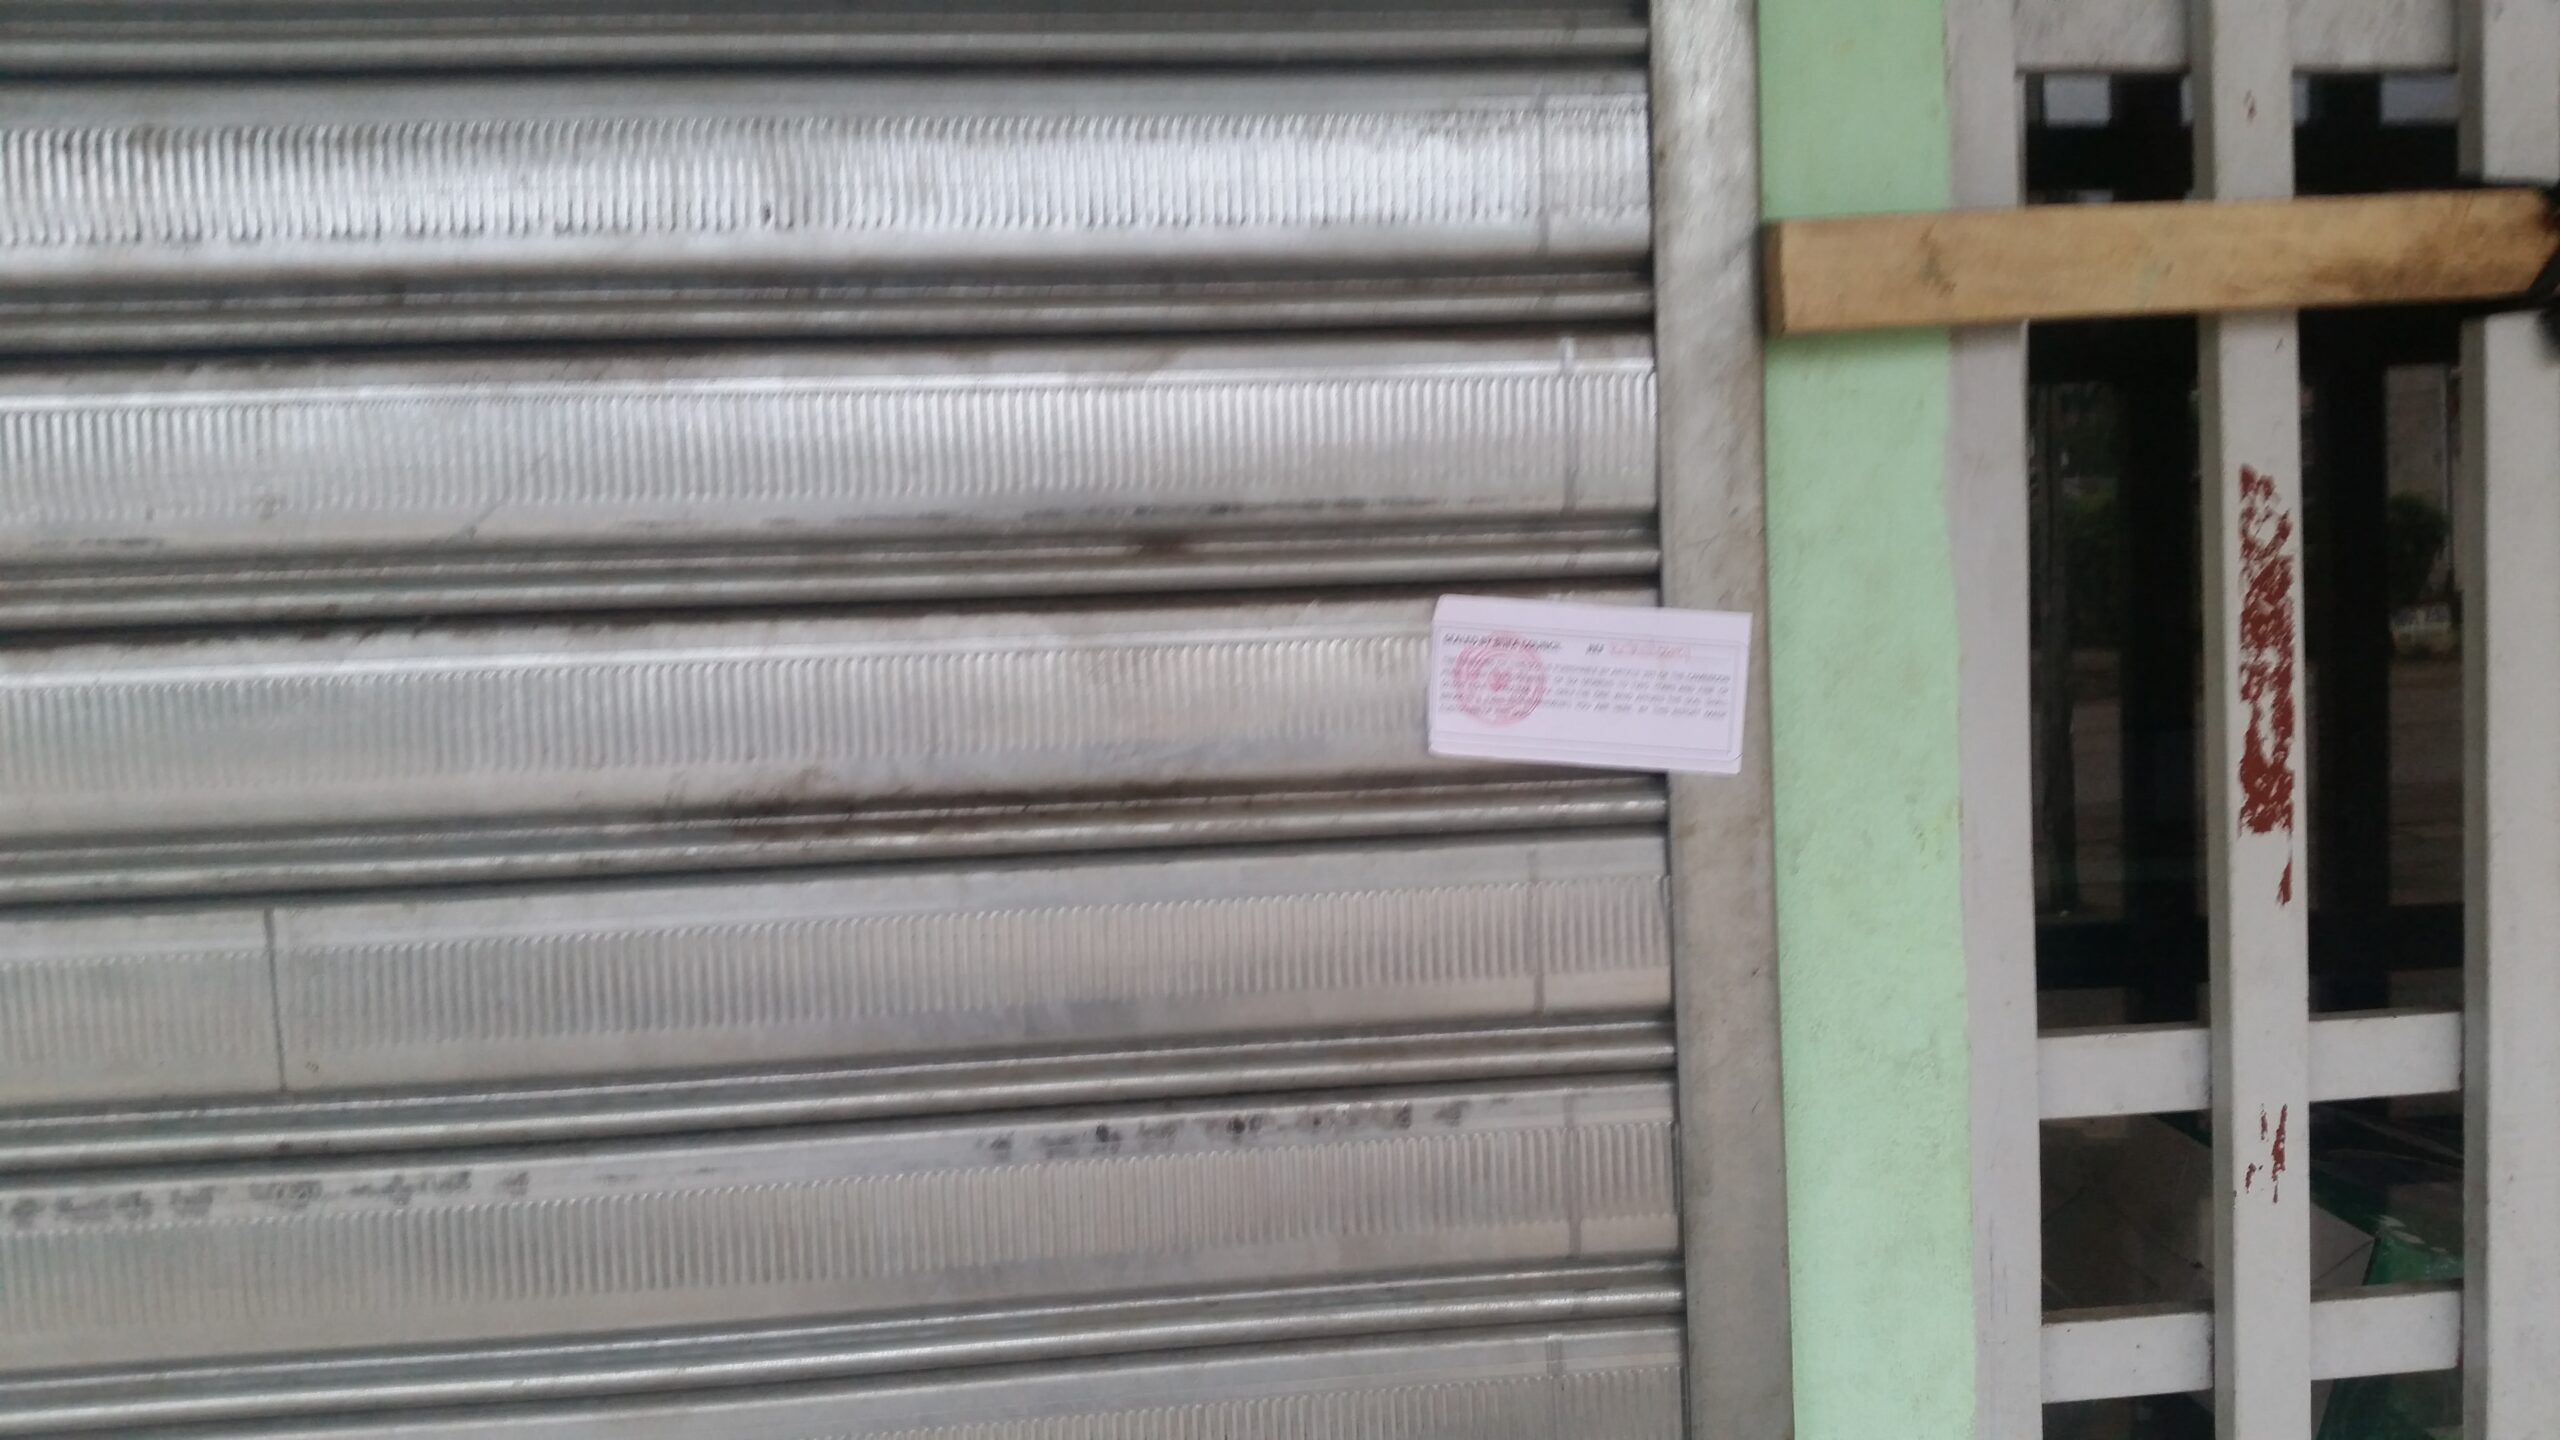 Shop sealed in Buea for respecting ghost town